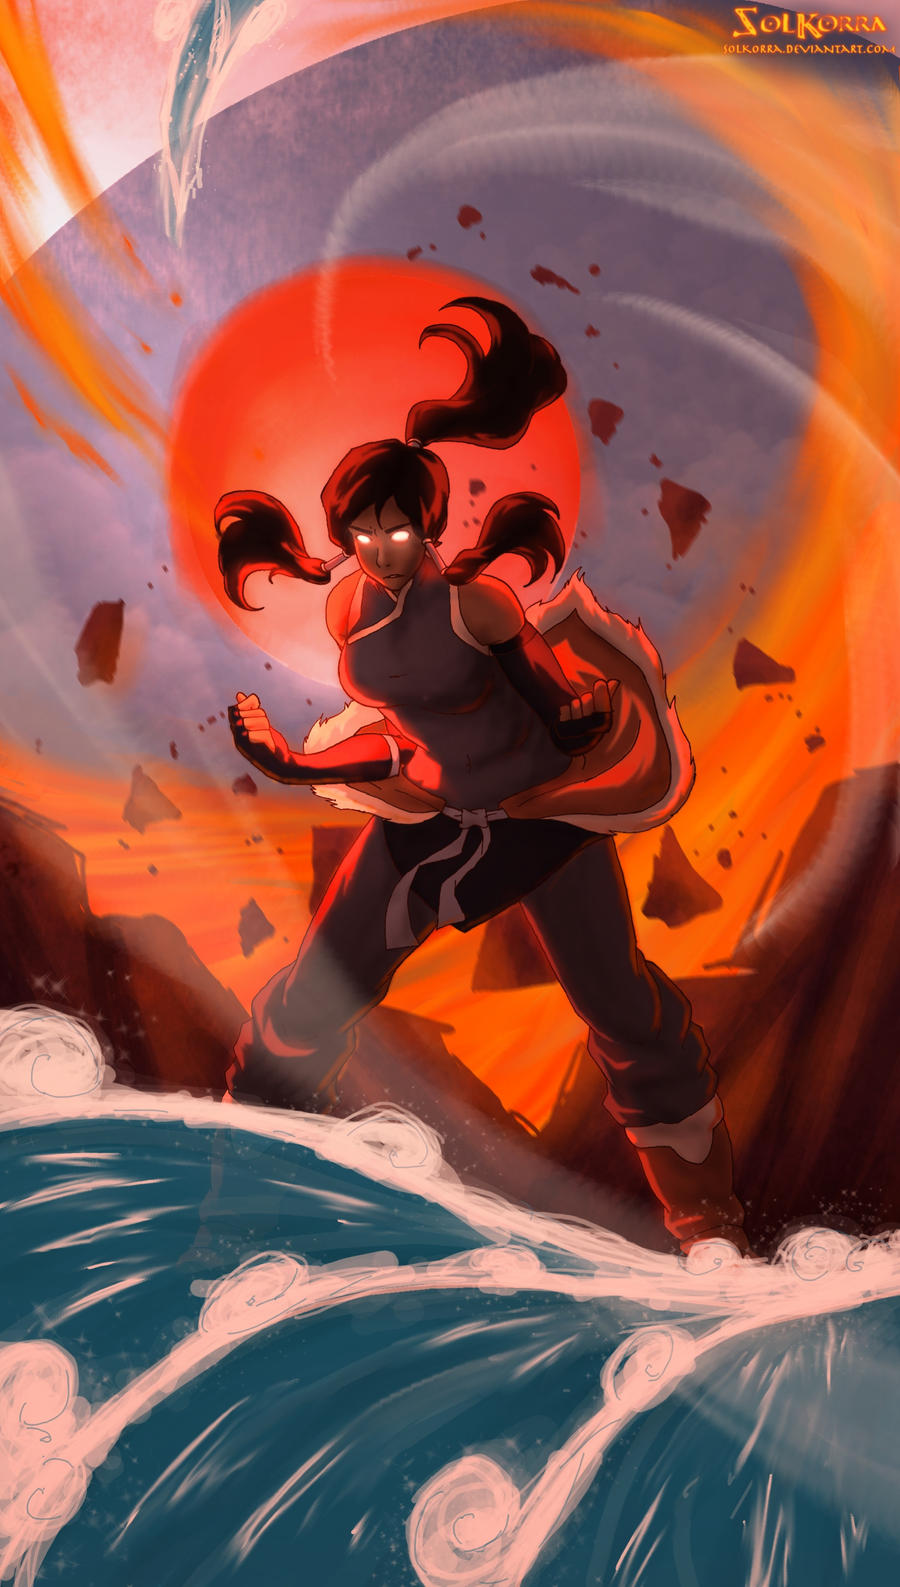 Korra Avatar State Power by SolKorra on DeviantArt